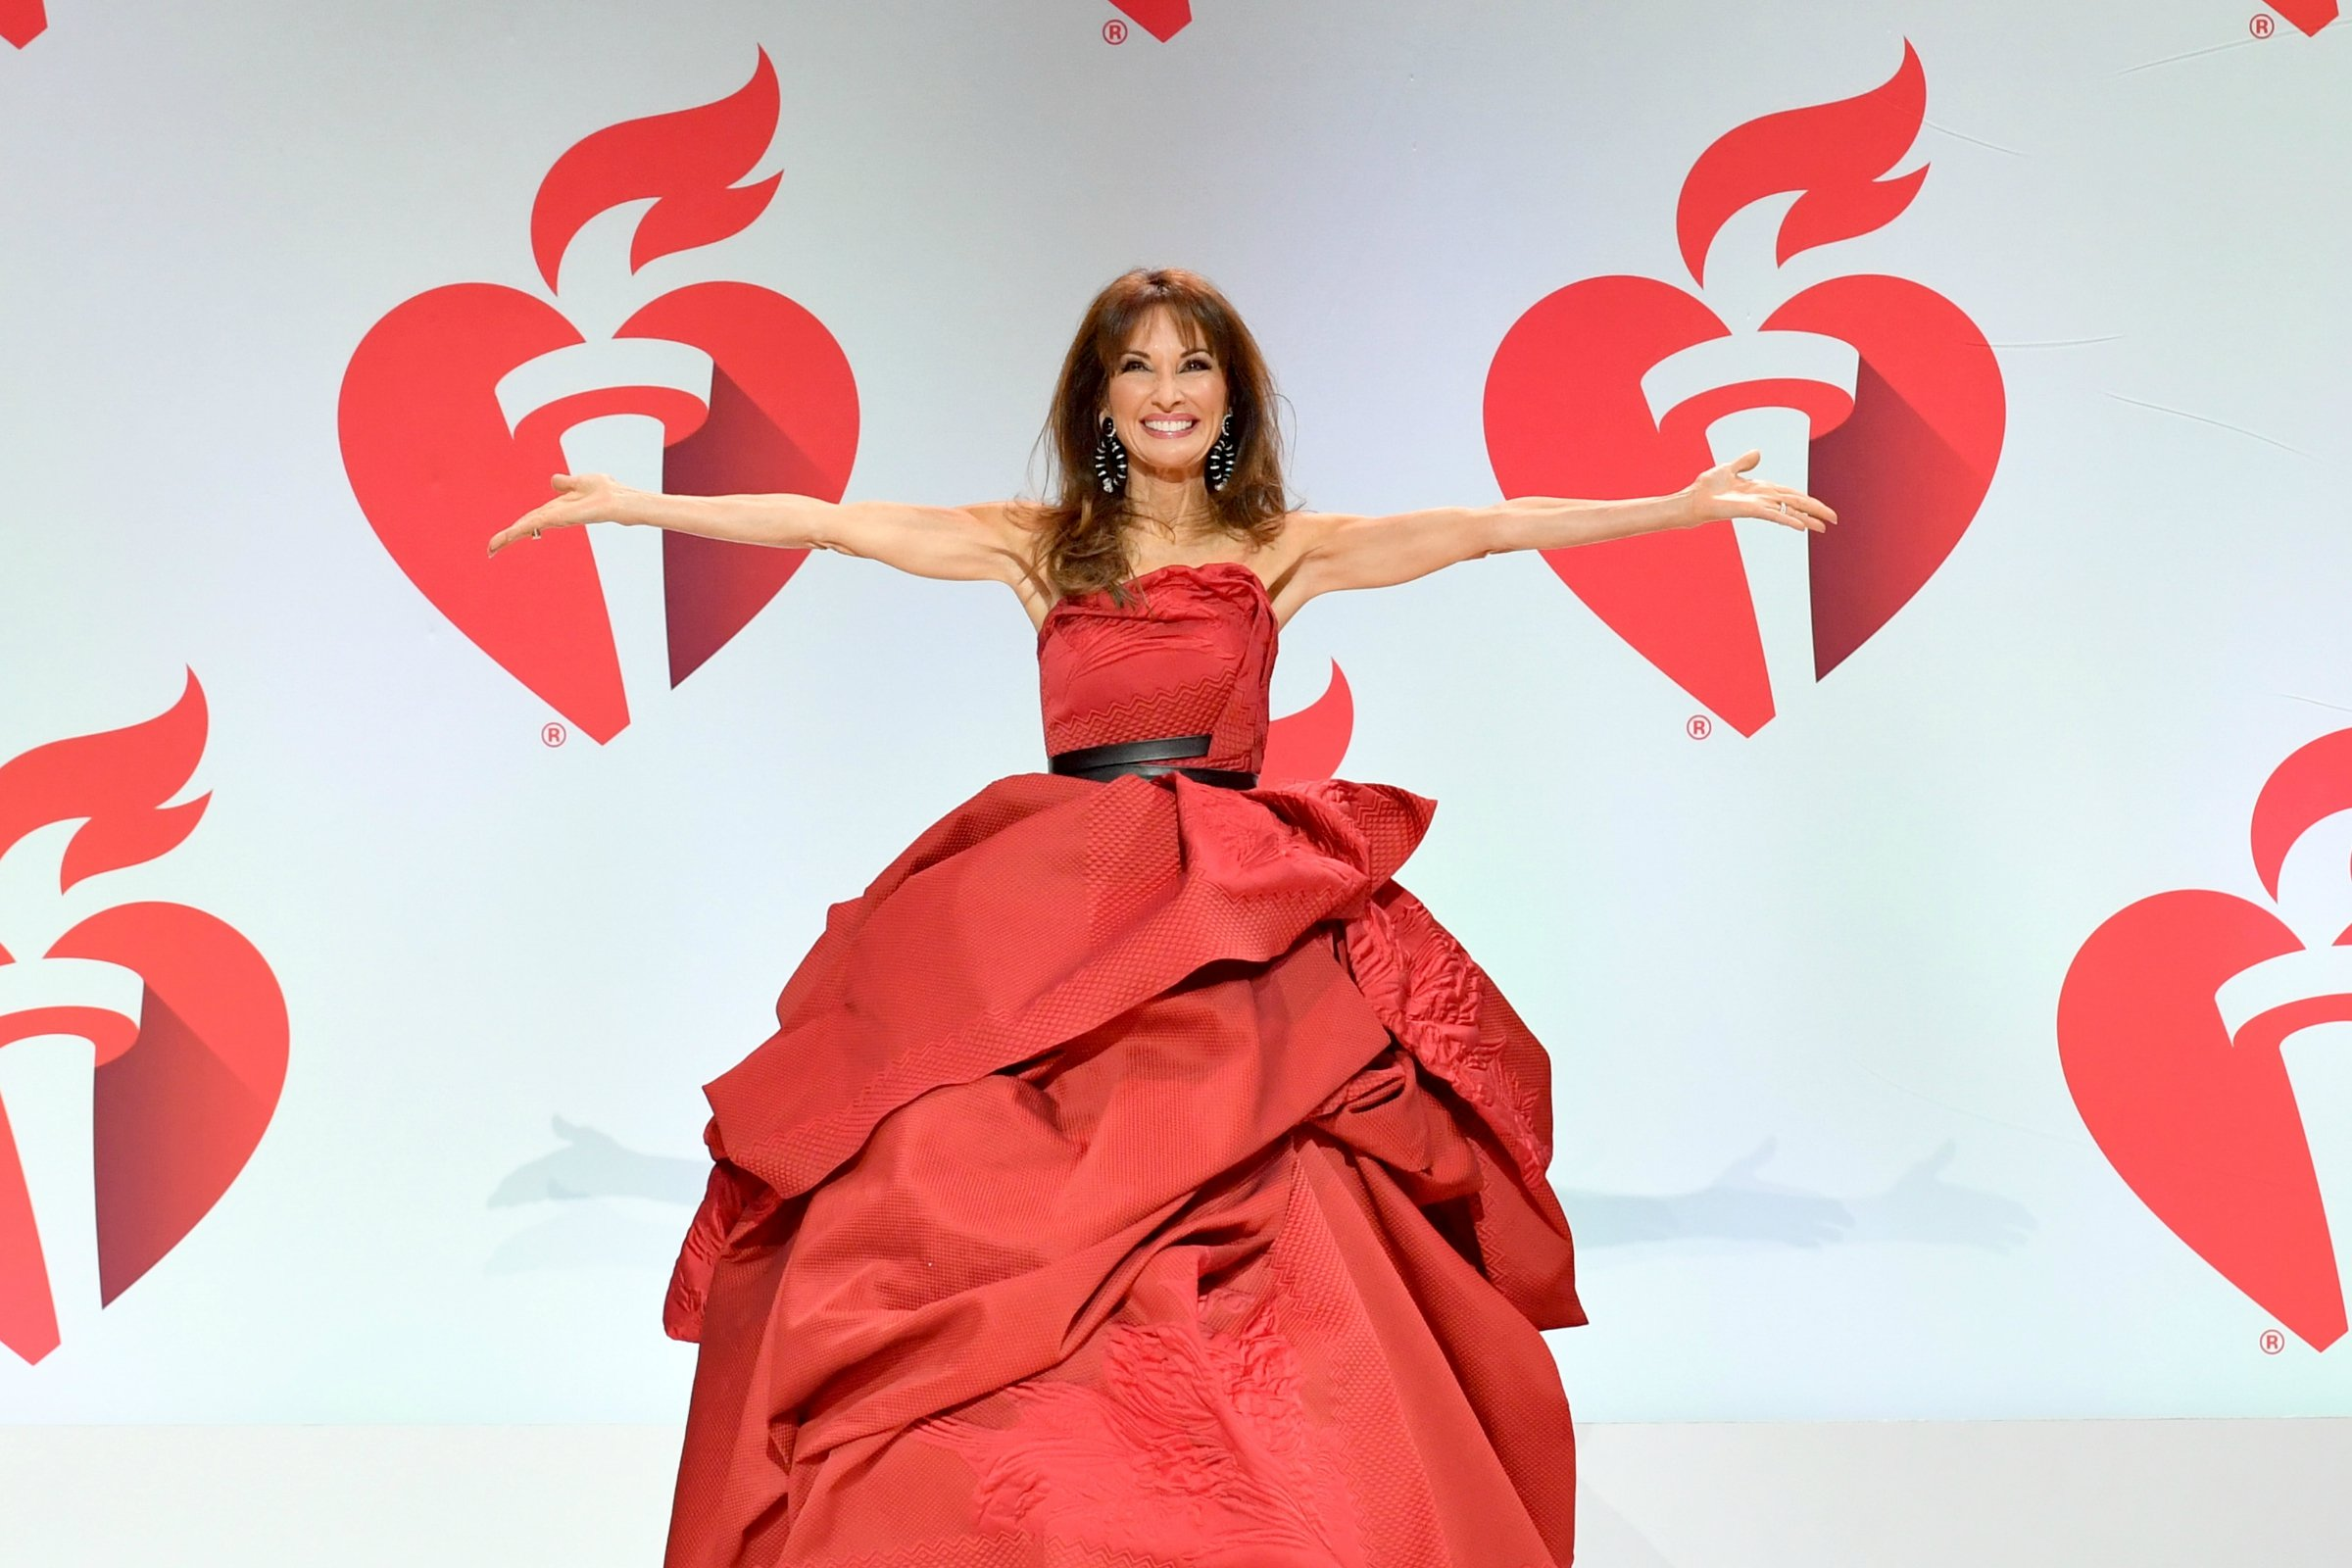 Susan Lucci walks the runway for The American Heart Association's Go Red For Women Red Dress Collection 2019 Presented By Macy's at Hammerstein Ballroom on Feb. 7 in New York. (Photo by Slaven Vlasic/Getty Images for AHA) Photo Credit - Getty Images for AHA